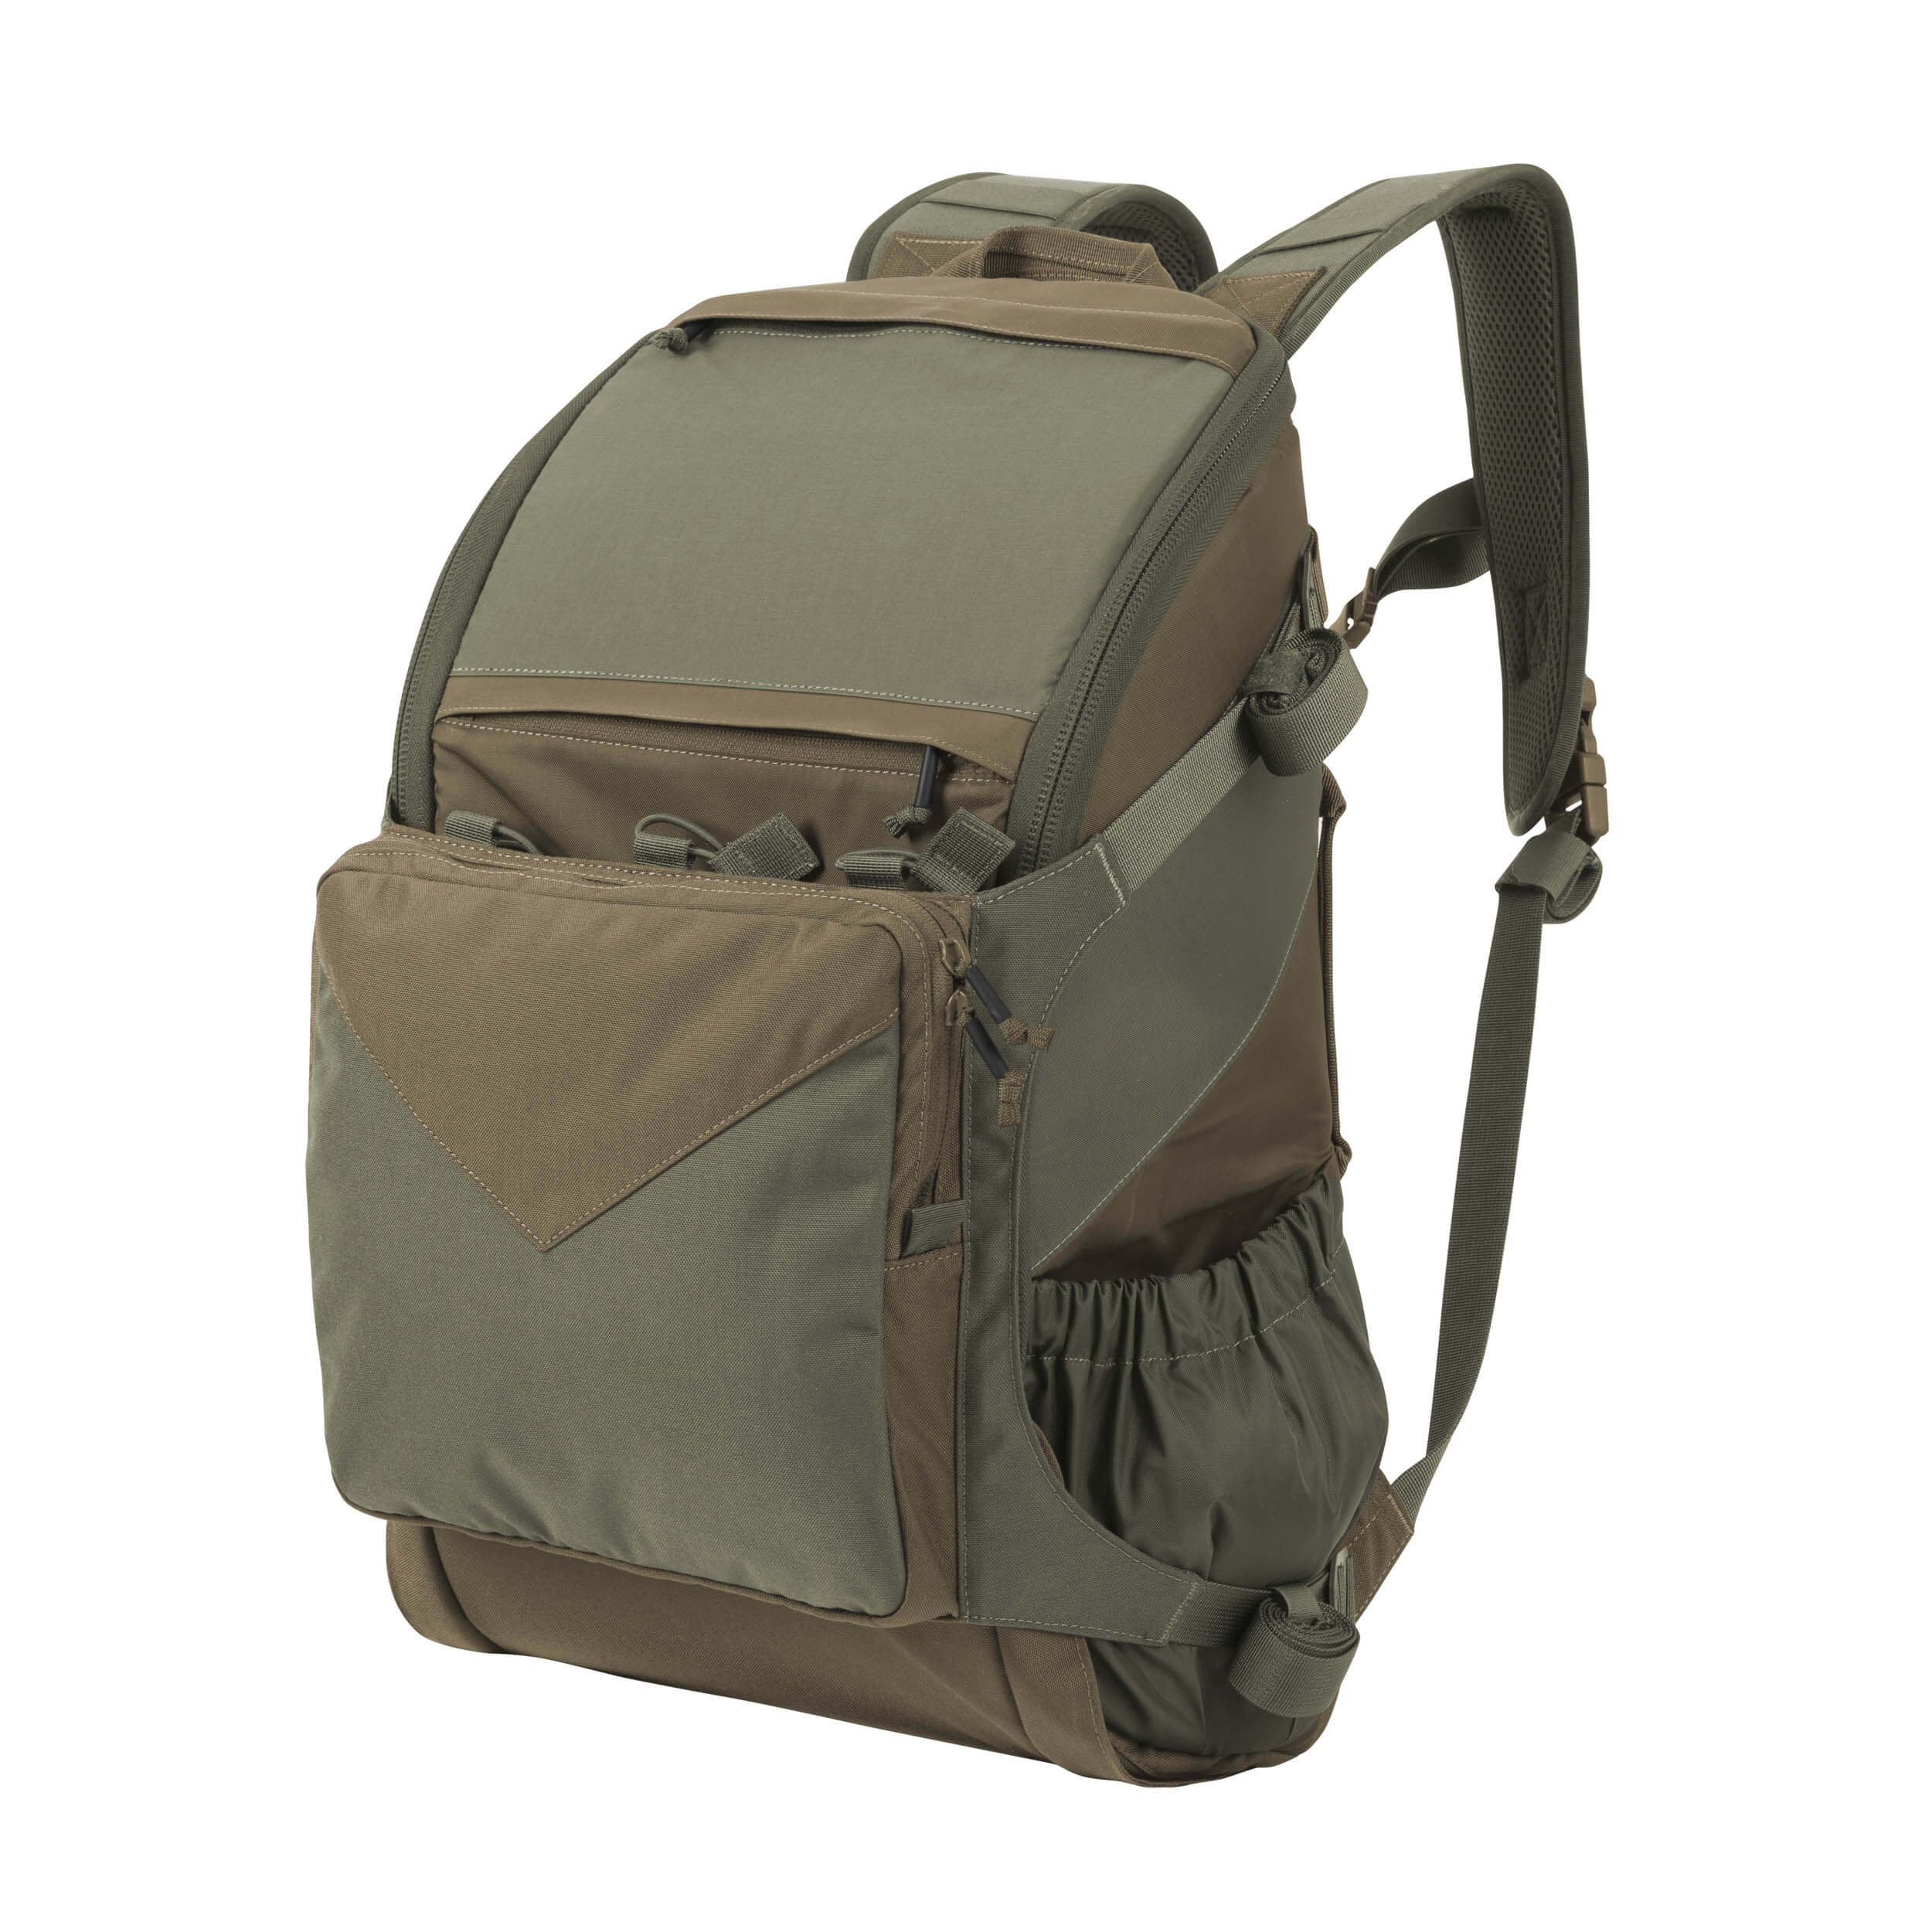 Helikon-Tex BAIL OUT BAG Rucksack -Nylon- Adaptive Green / Coyote A